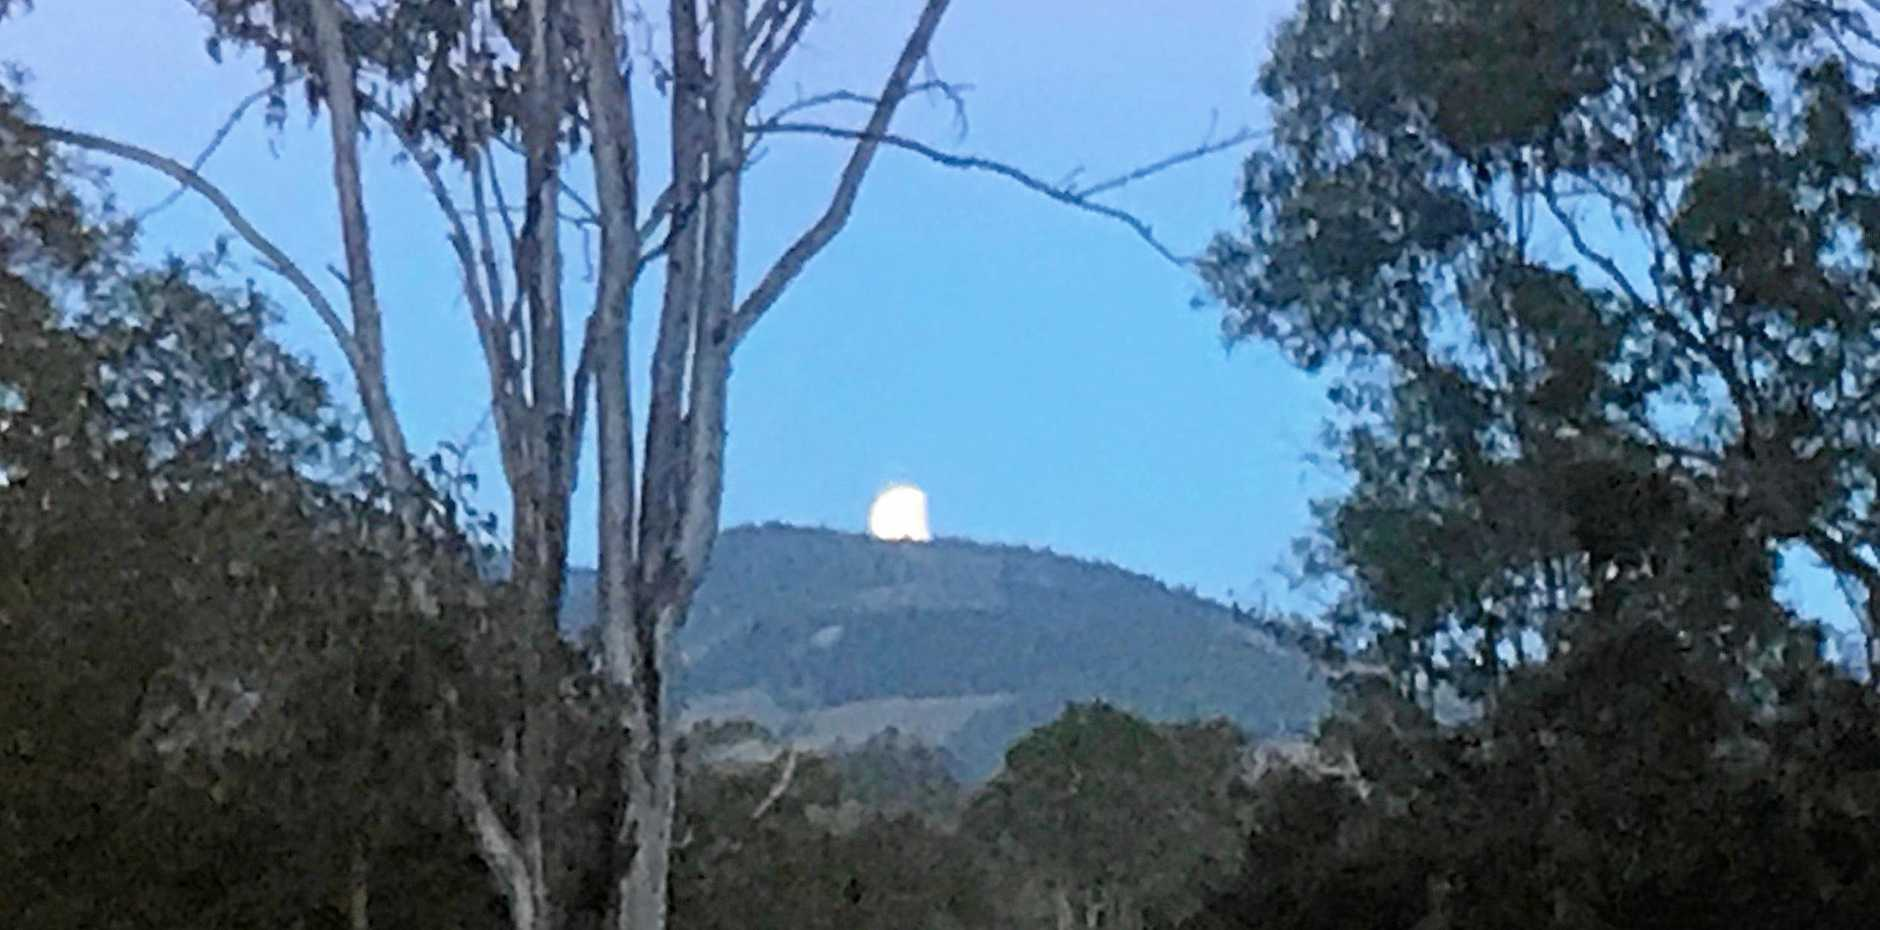 This morning's lunar eclipse, as photographed on a mobile phone at Pie Creek.